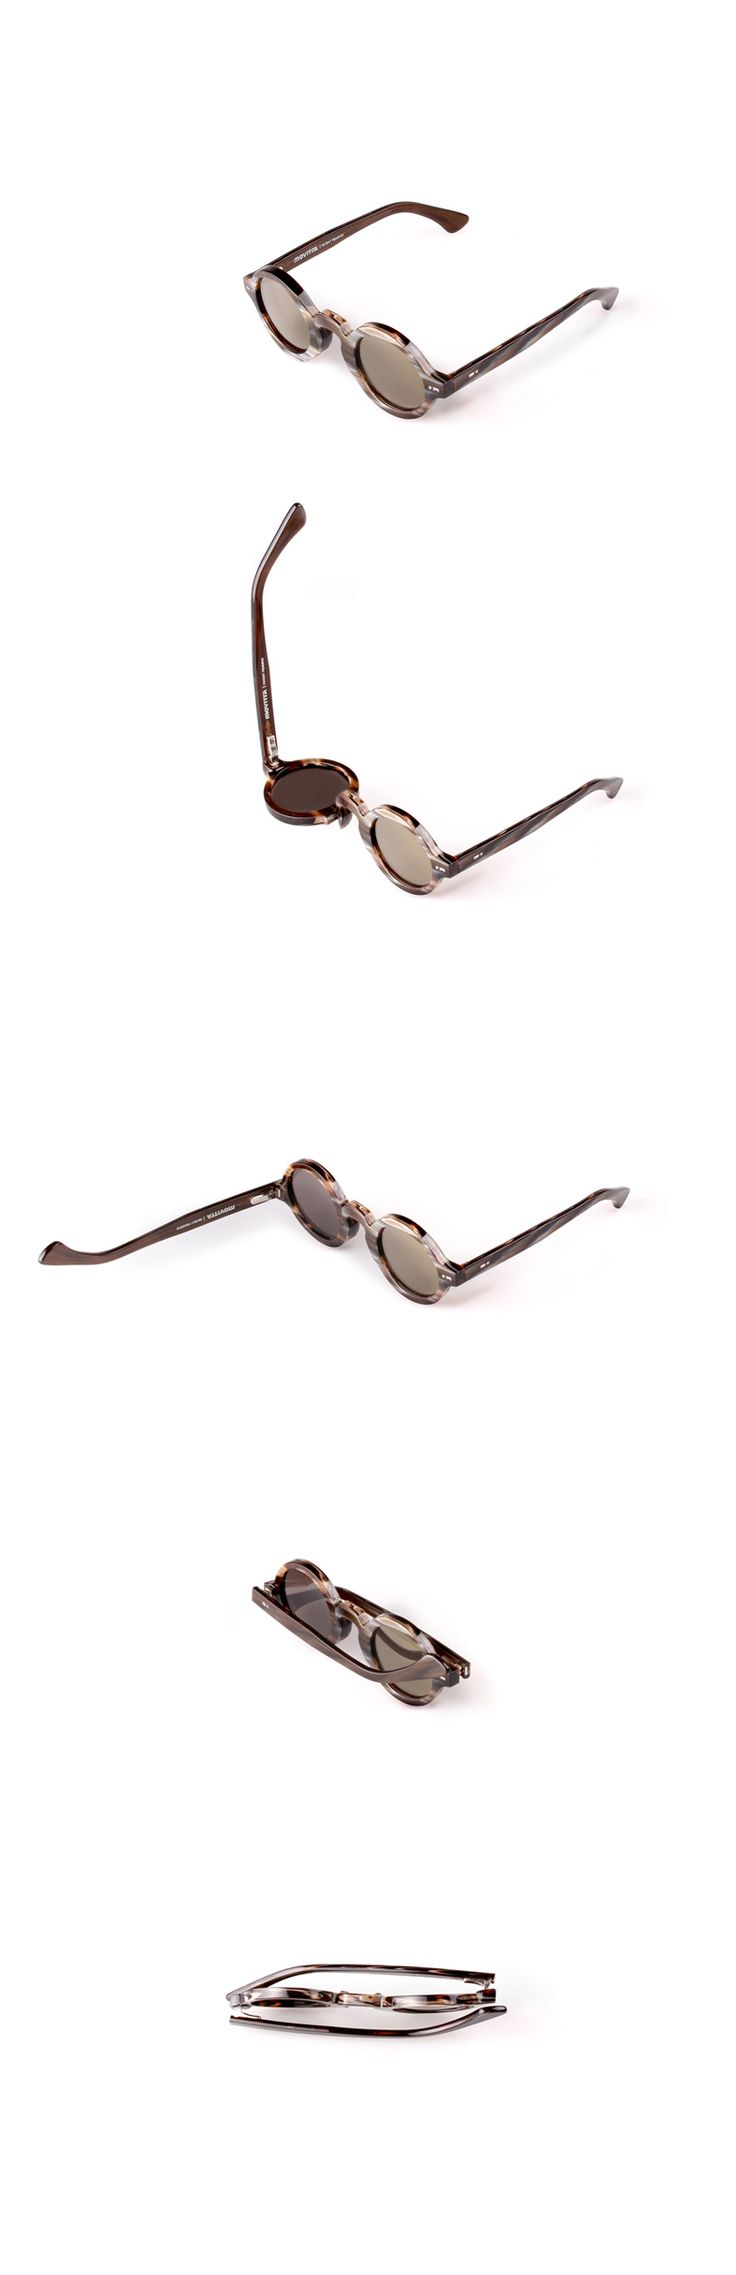 Movitra 215 - Corno scuro con lente flash bronze #sunglasses #movitra #movitraspectacles #spectacles #glasses #eyewear